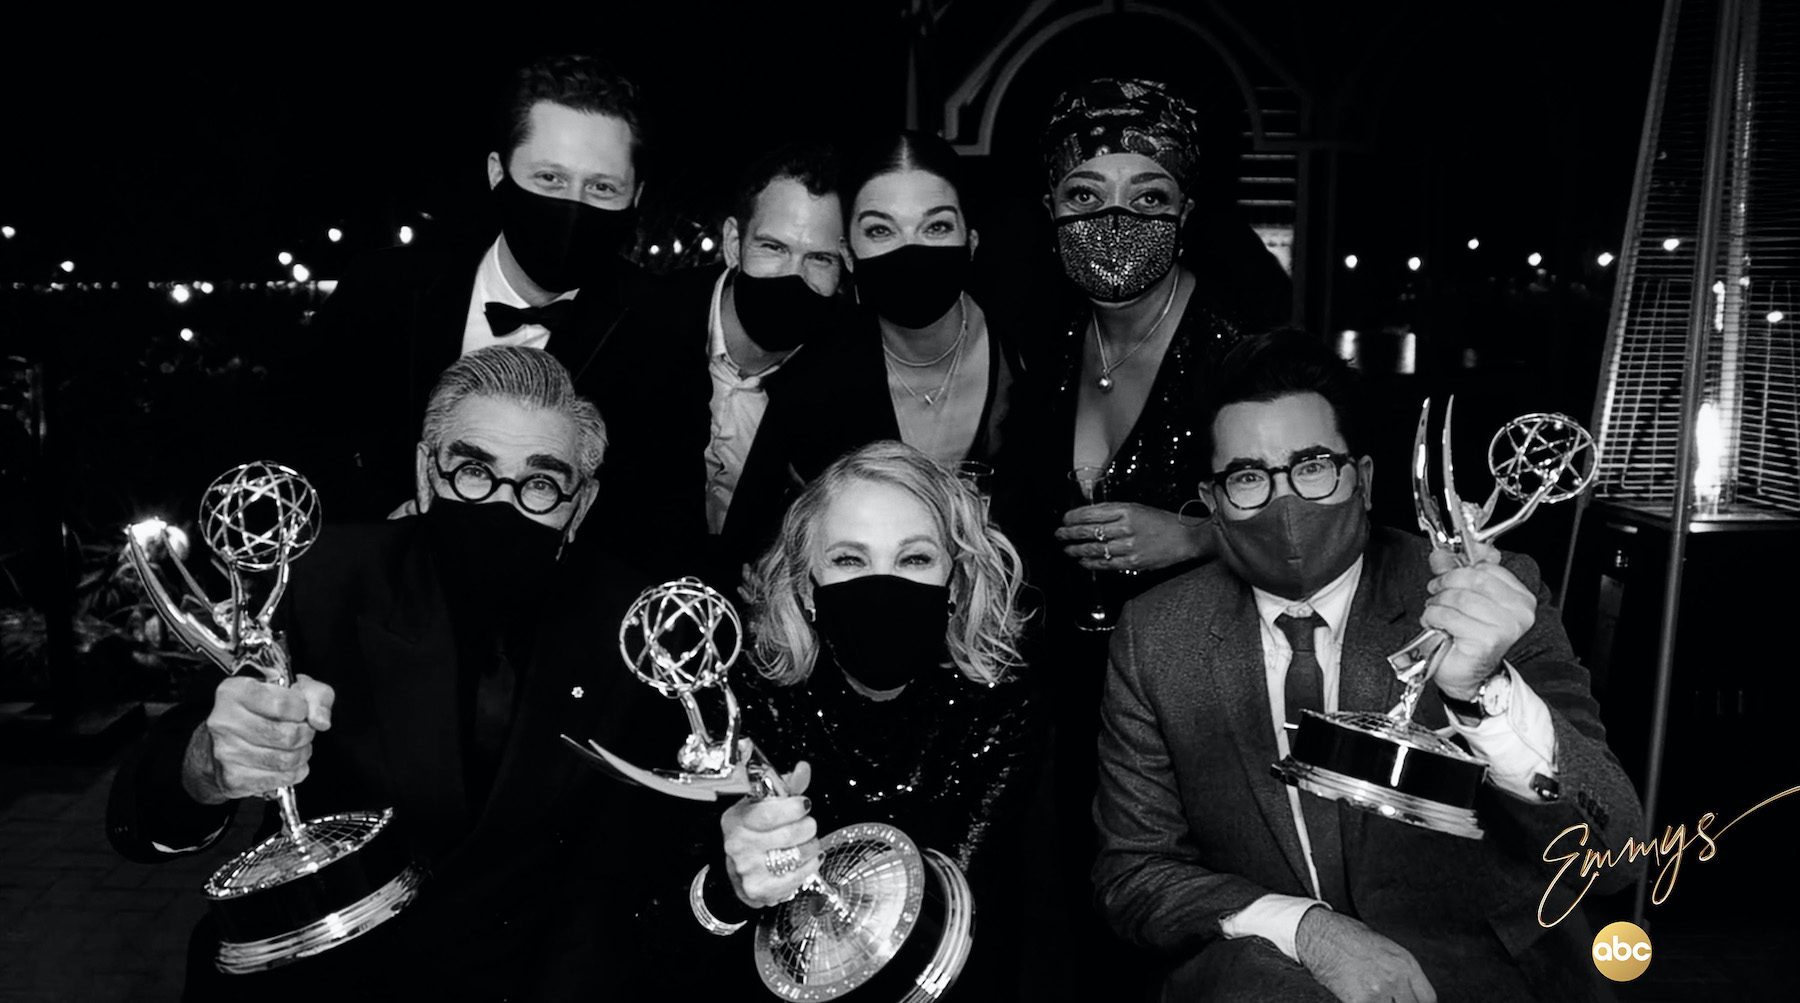 The 72nd Emmy Awards on ABC: `Schitt's Creek` cleaned house in the comedy categories. Pictured are cast members Eugene Levy, Catherine O'Hara, Dan Levy, Noah Reid, Andrew Cividino, Annie Murphy and Karen Robinson. (ABC photo by Frank Ockenfels)